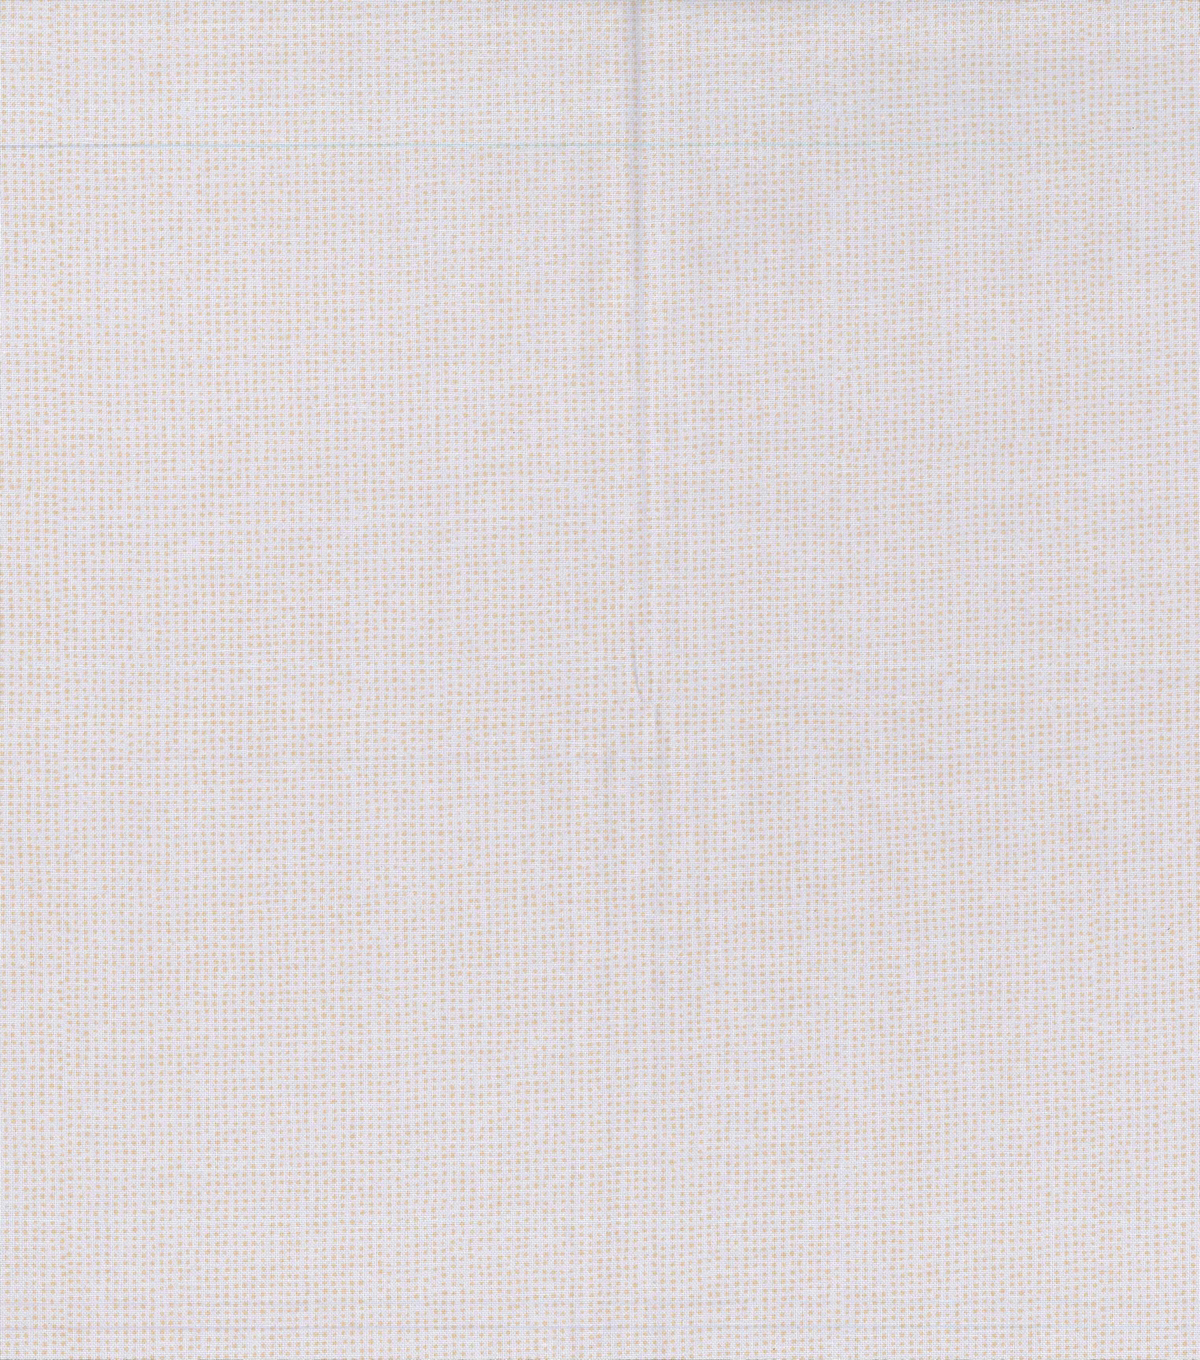 "Keepsake Calico™ Cotton Fabric 43""-Winter White Textured Dot Blender"